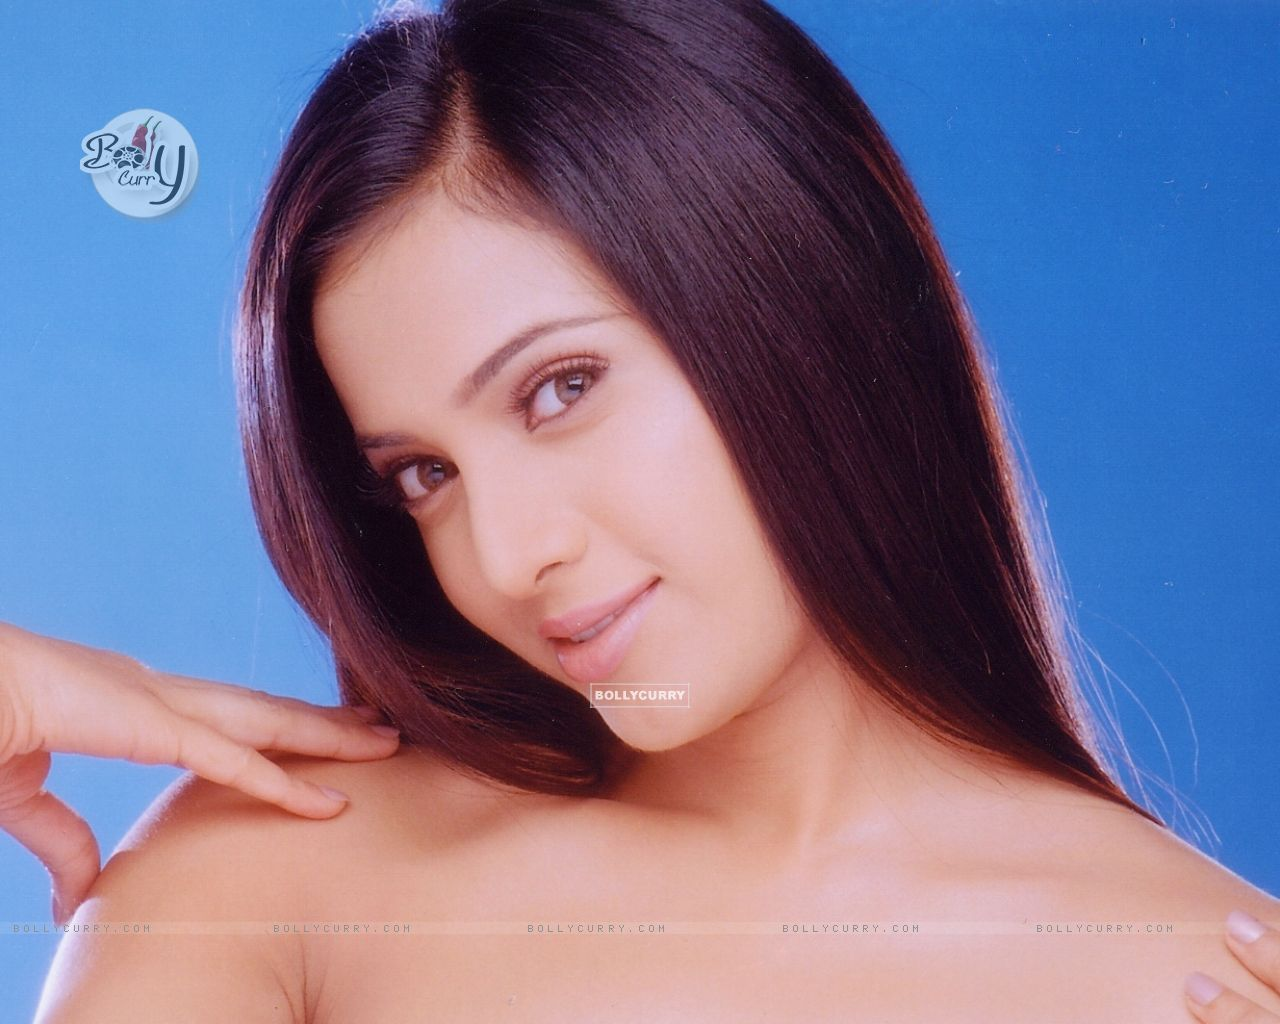 Forum on this topic: Jeremy Hotz, shilpa-anand/